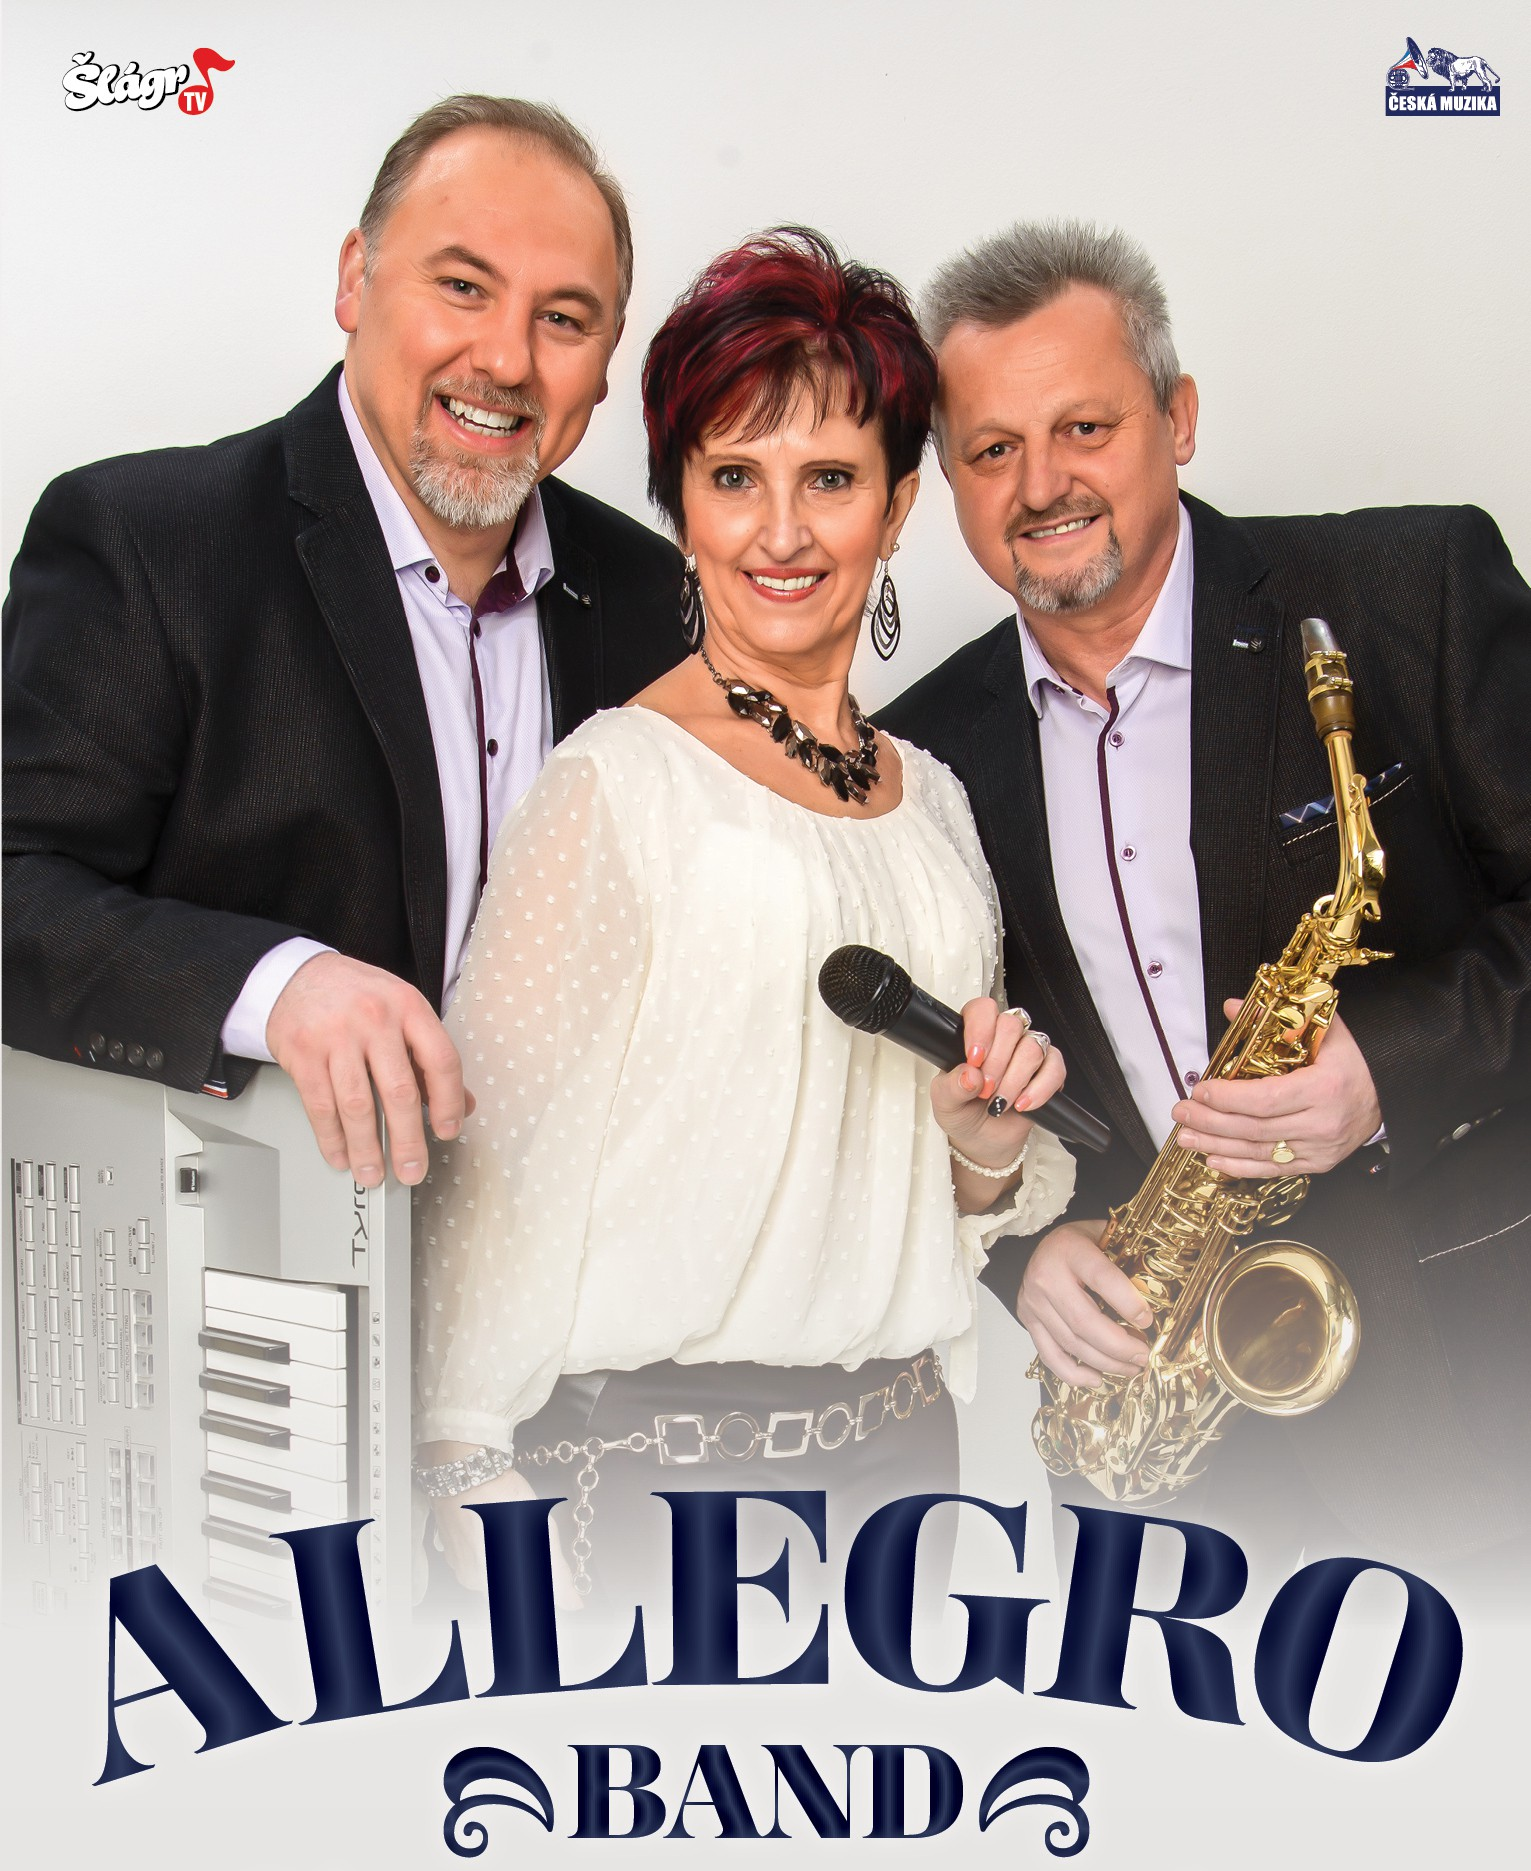 allegro-band--to-starnuti-zradne--dvd-spread--csm-4606--04-018.jpg